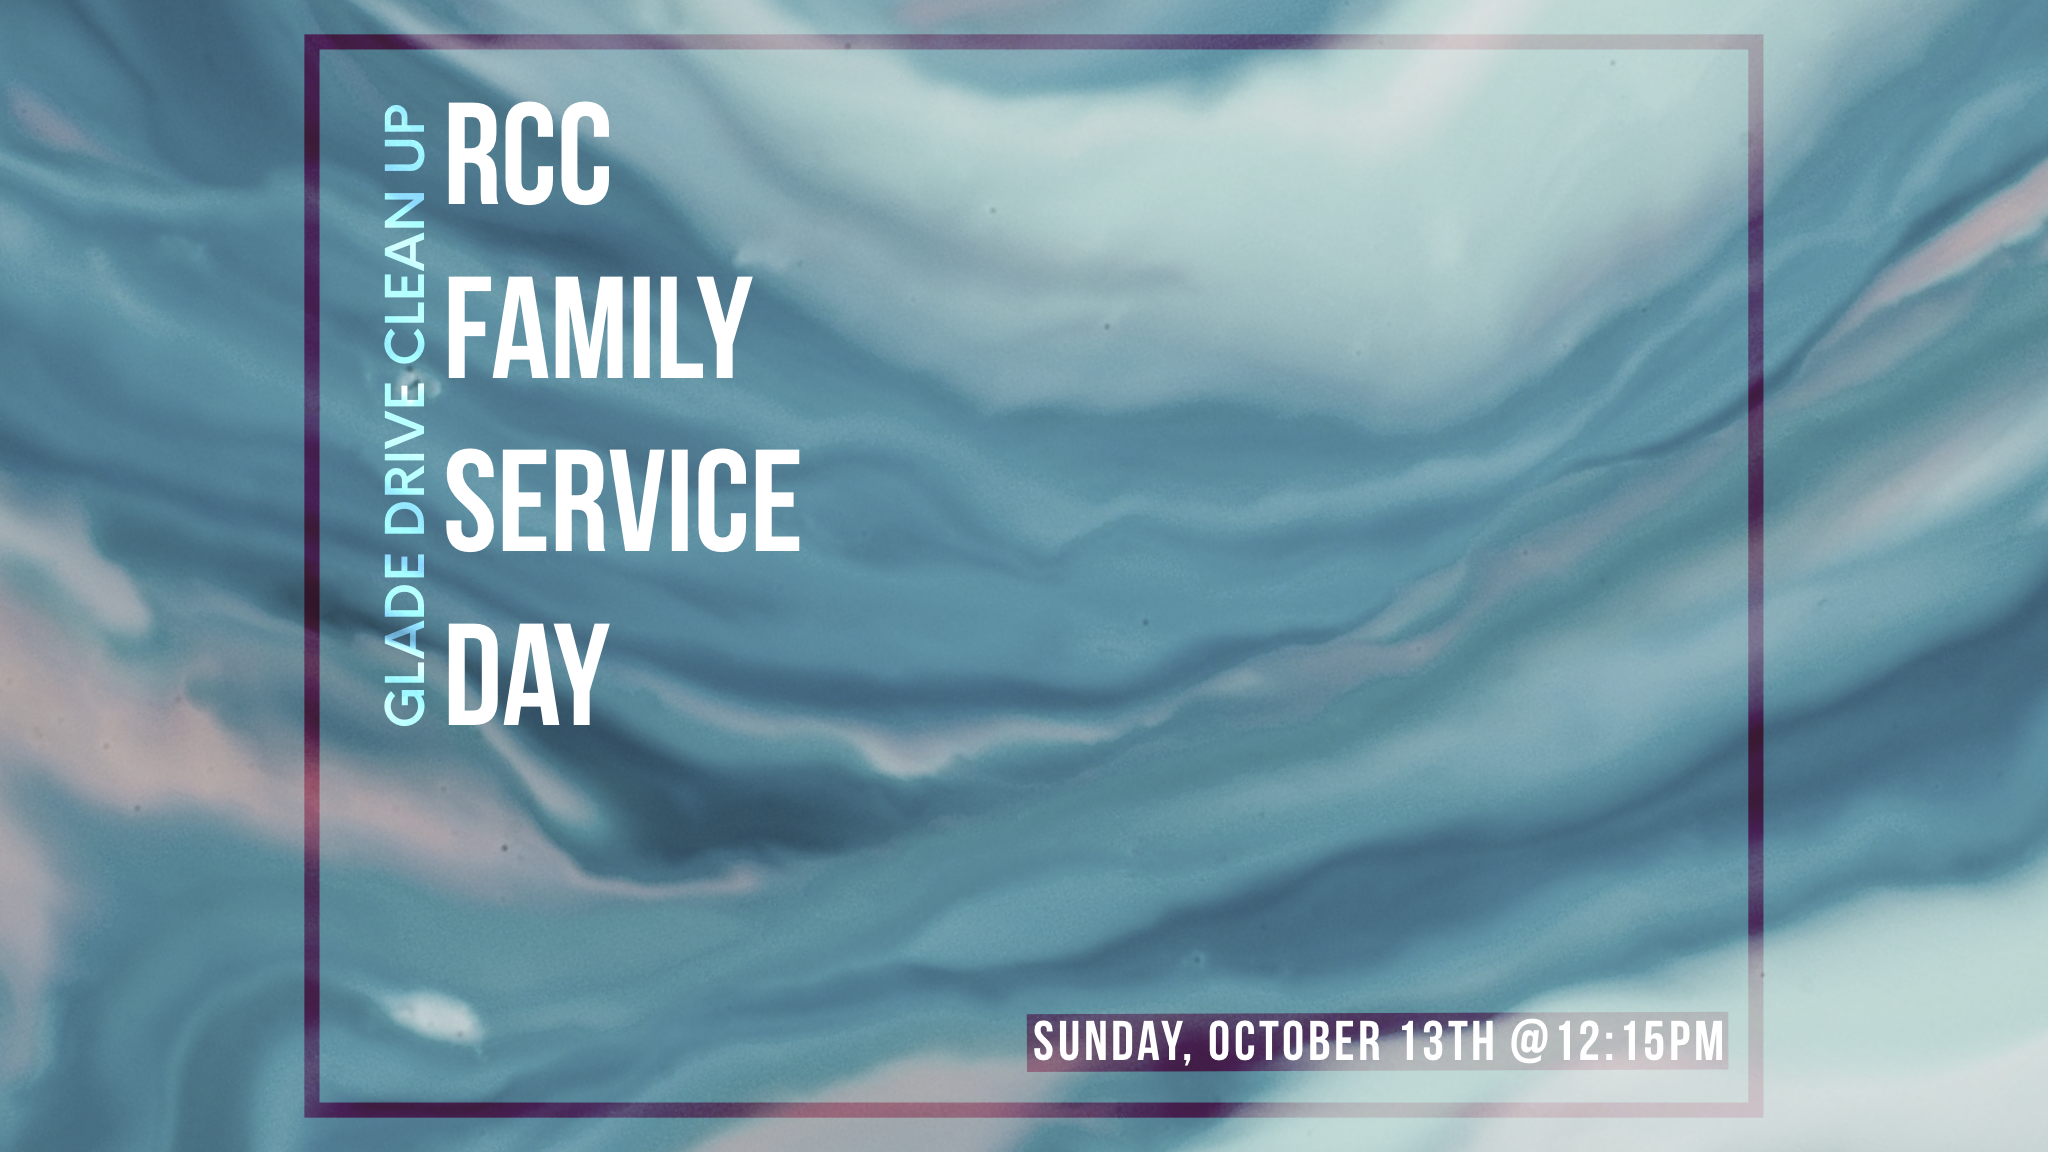 FAMILY SERVICE DAY image